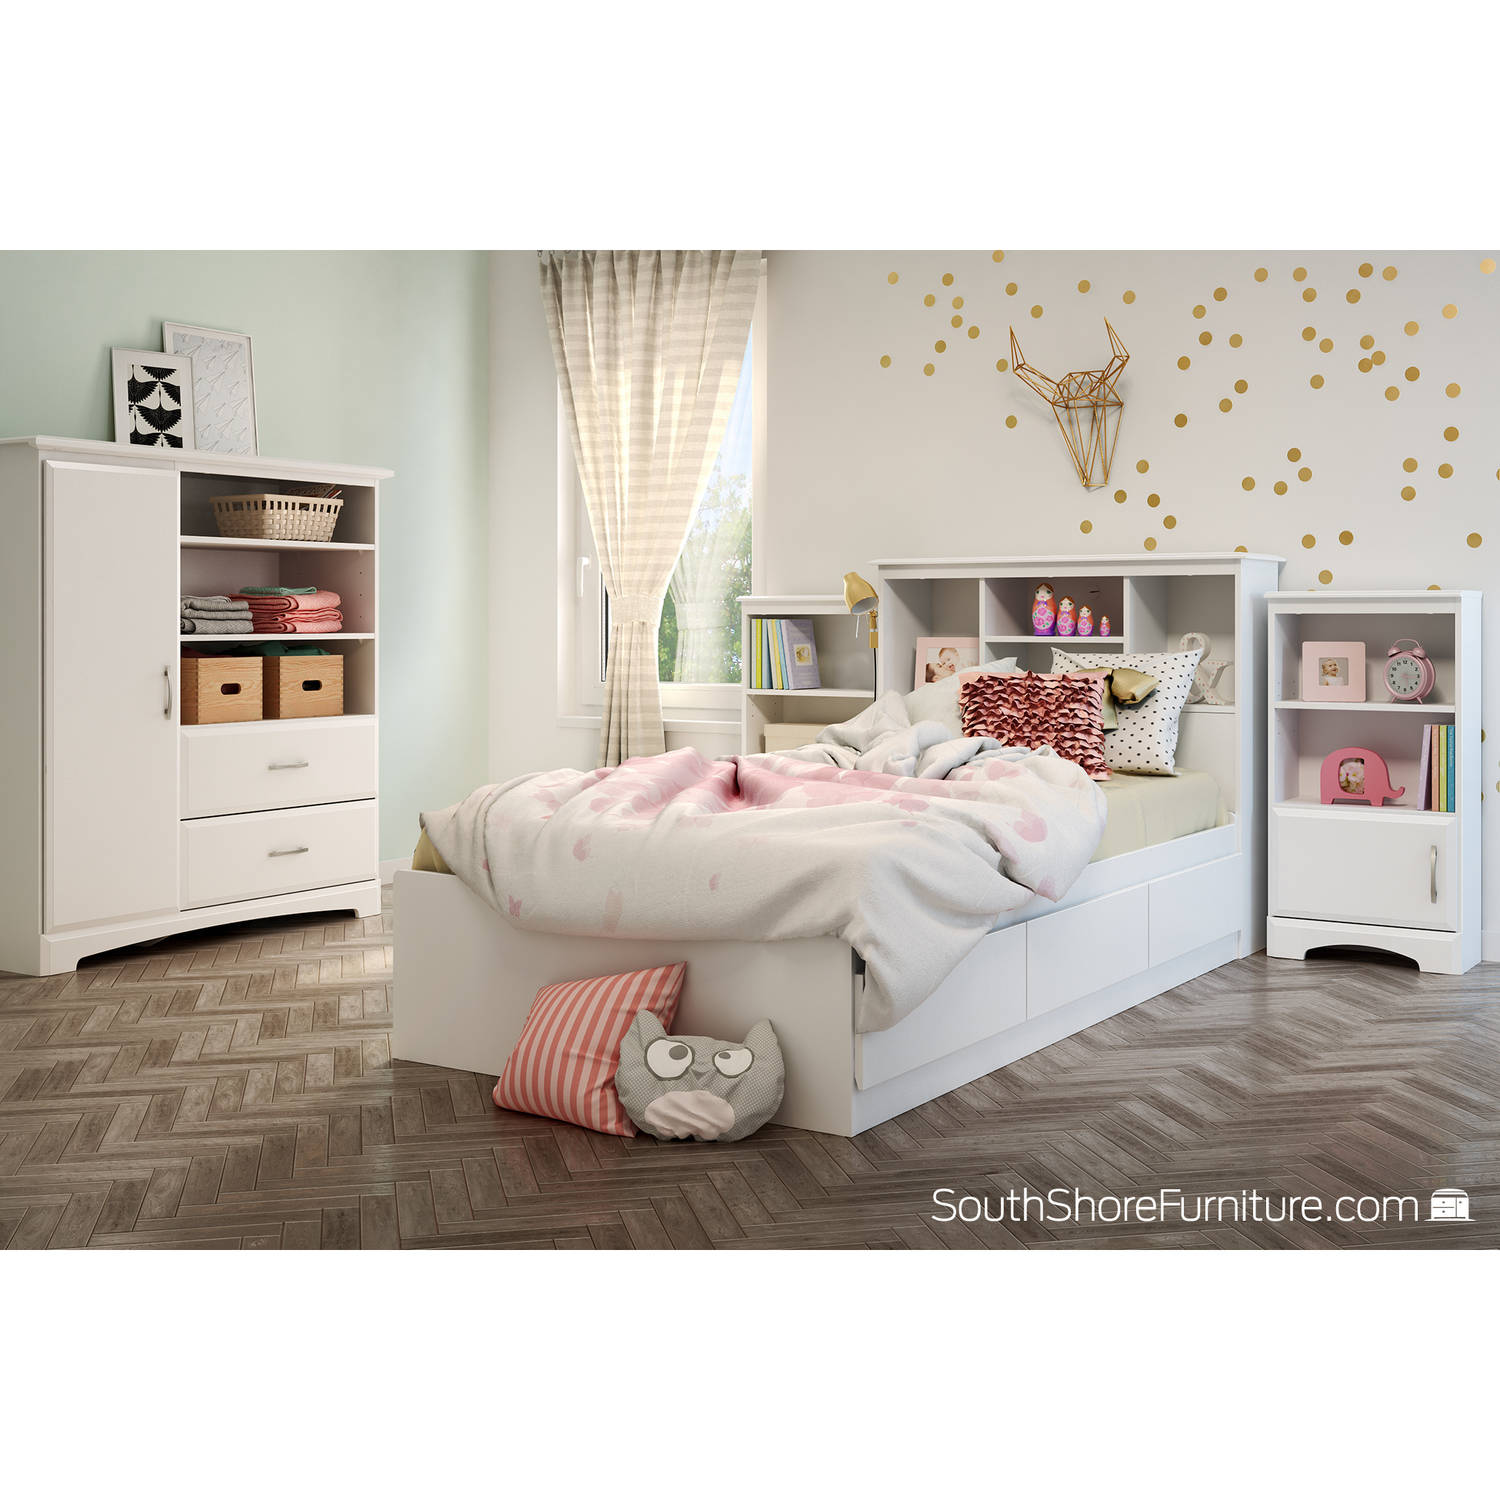 South Shore Callesto Twin Mates Bed in Pure White by South Shore